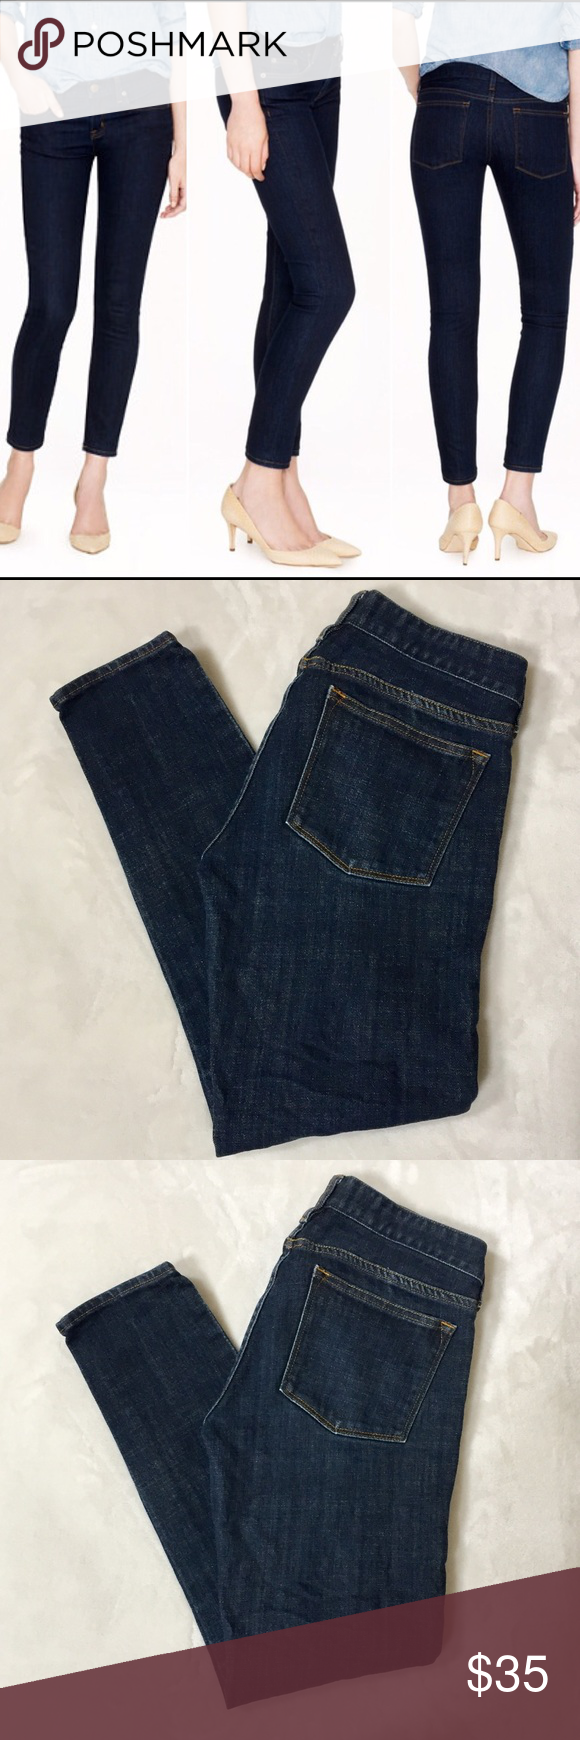 "J Crew Toothpick Skinny Jeans in Classic Rinse Size 26 J Crew Toothpick Jeans in ""Classic Rinse"", which is a dark classic Rinse. In very good preowned condition with no flaws. Size 26. ⚓️No trades or holds. I accept reasonable offers unless the item is priced at $8 or less and then the price is FIRM. I only negotiate through the offer button. I do not model. I ship within two business days of your order. I only use Posh. 🚭🐩B4 J. Crew Jeans Skinny"